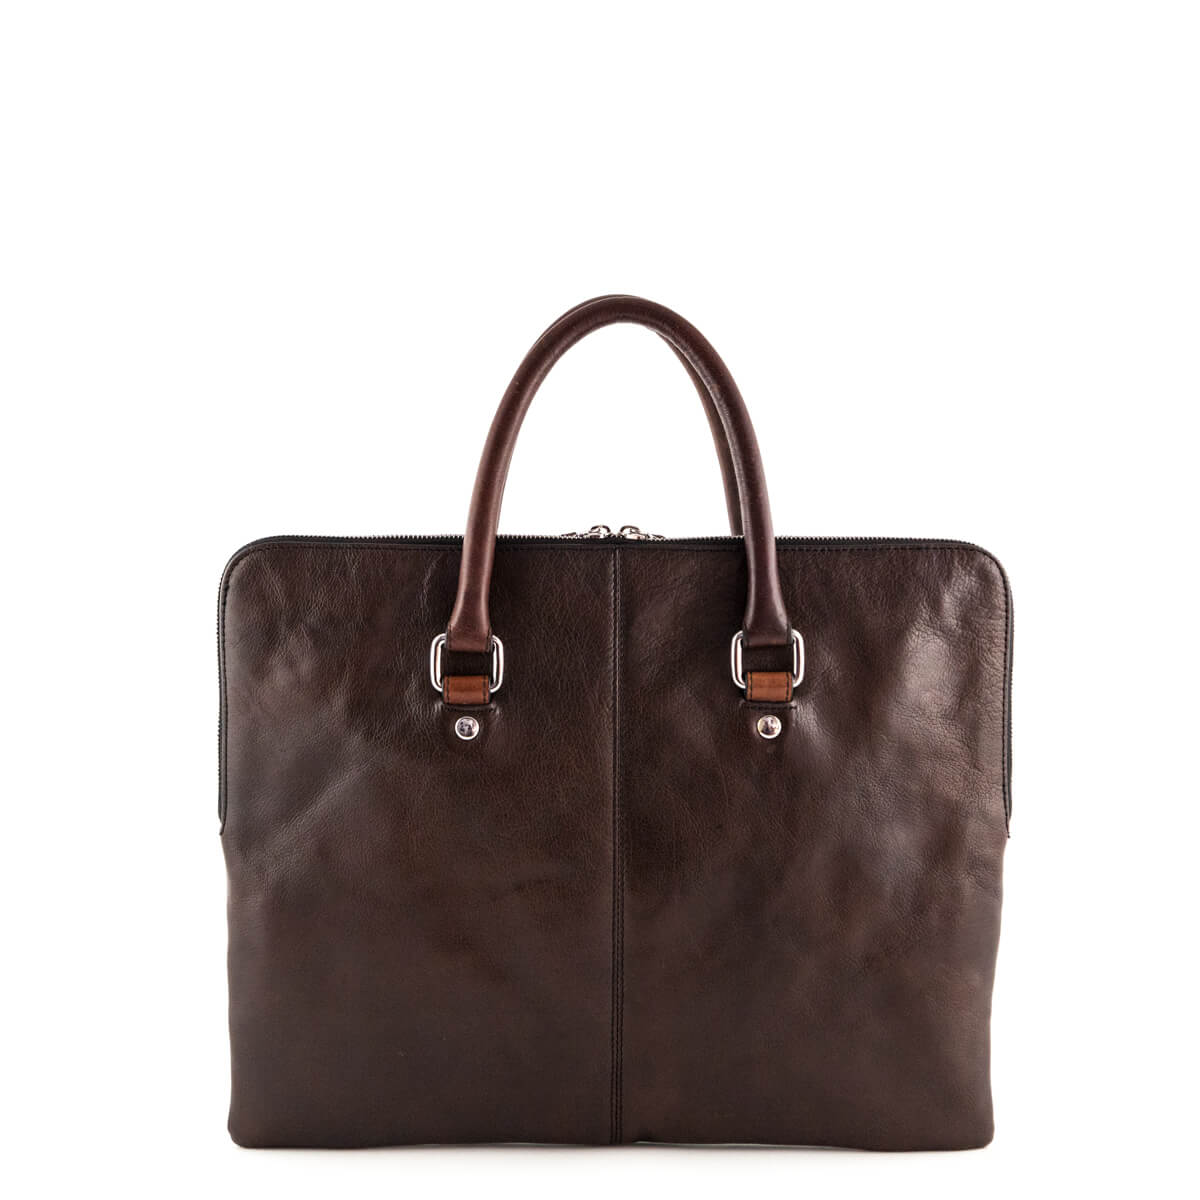 d16e3fbd352 ... Dolce and Gabbana Brown Leather Laptop Case - LOVE that BAG - Preowned  Authentic Designer Handbags ...